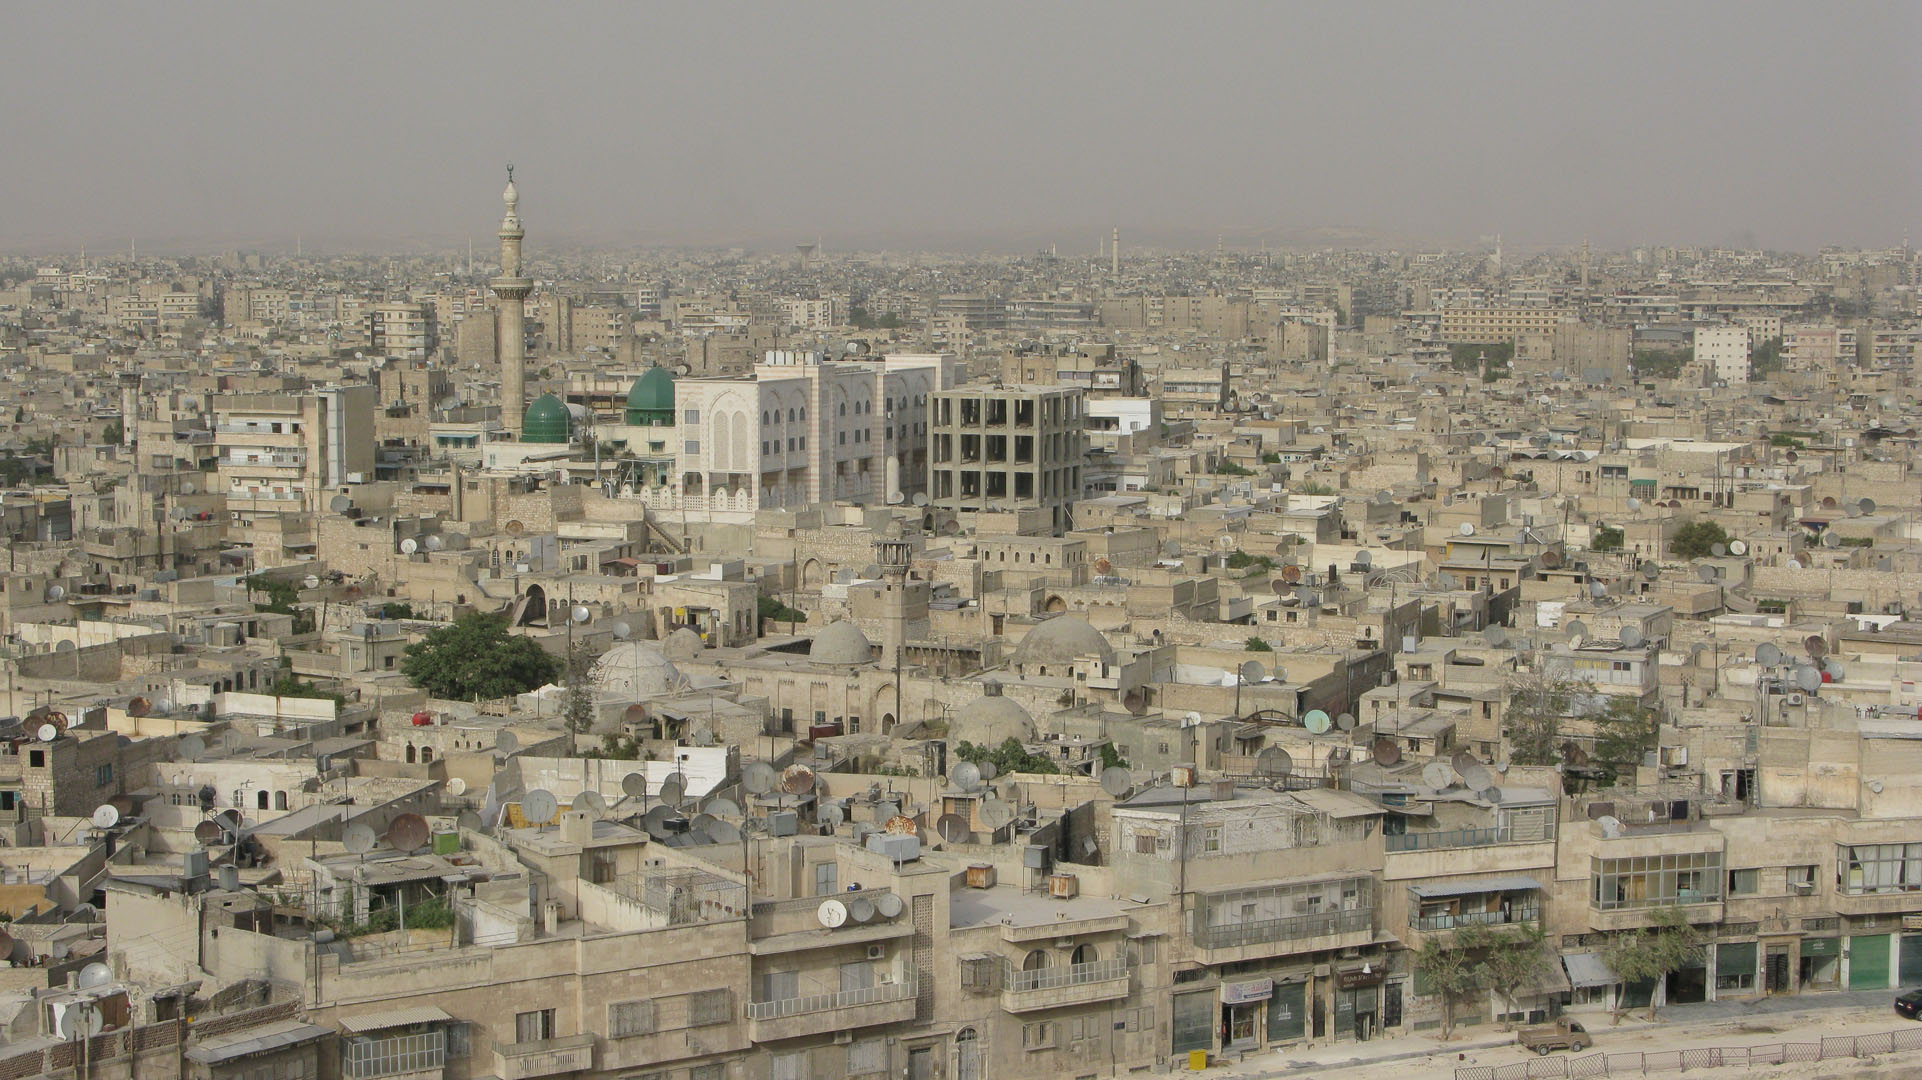 Syrians talked about rebuilding a ruined area in Aleppo